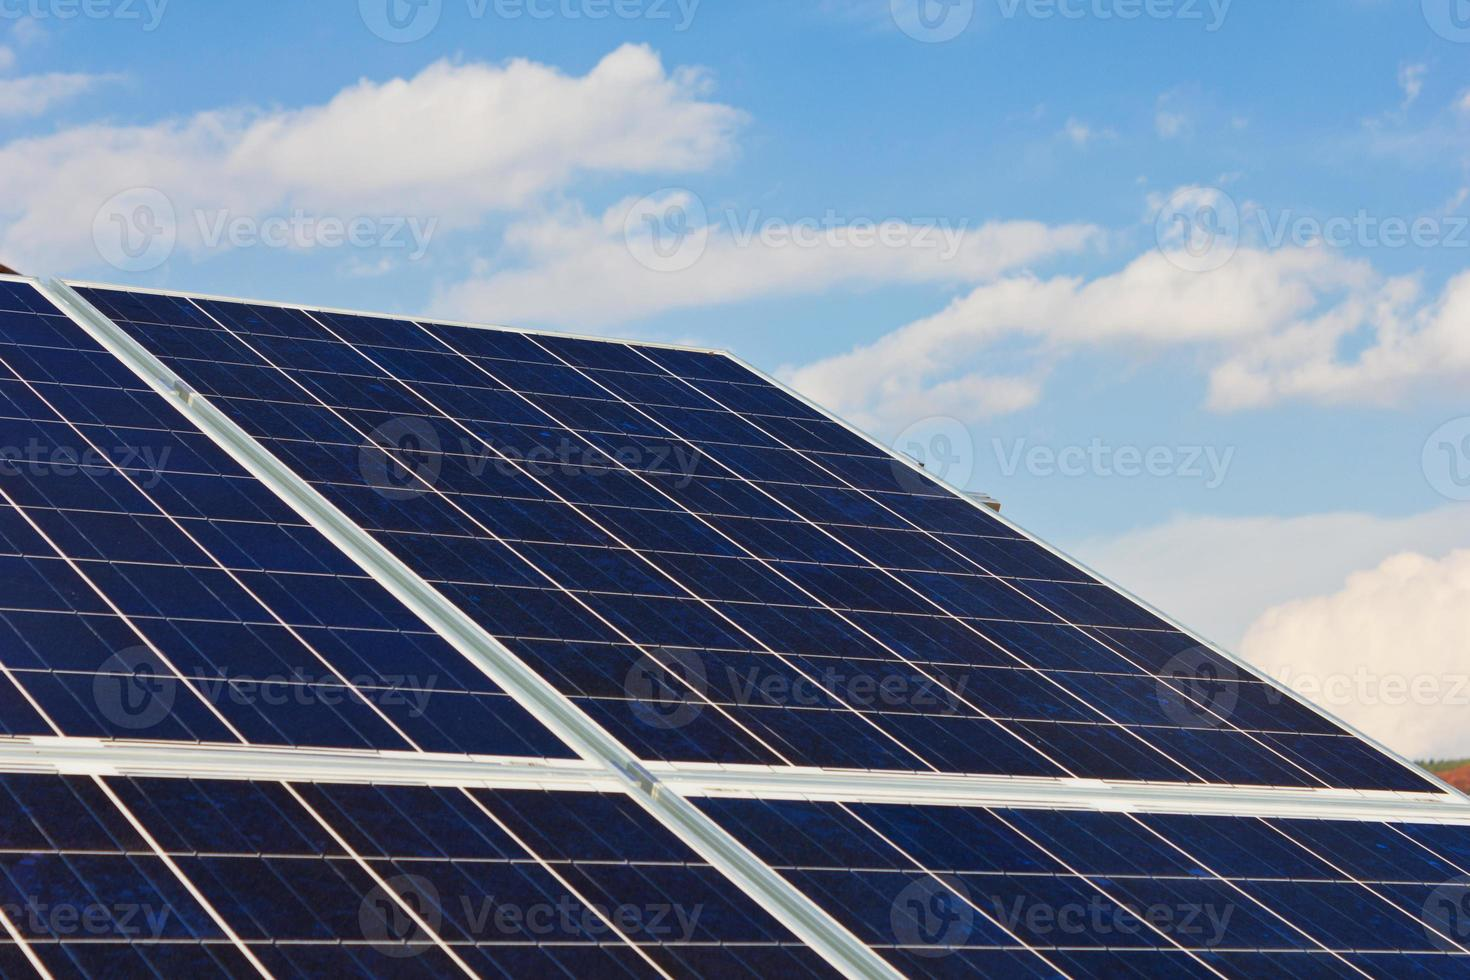 Roof with solar panels cells photo